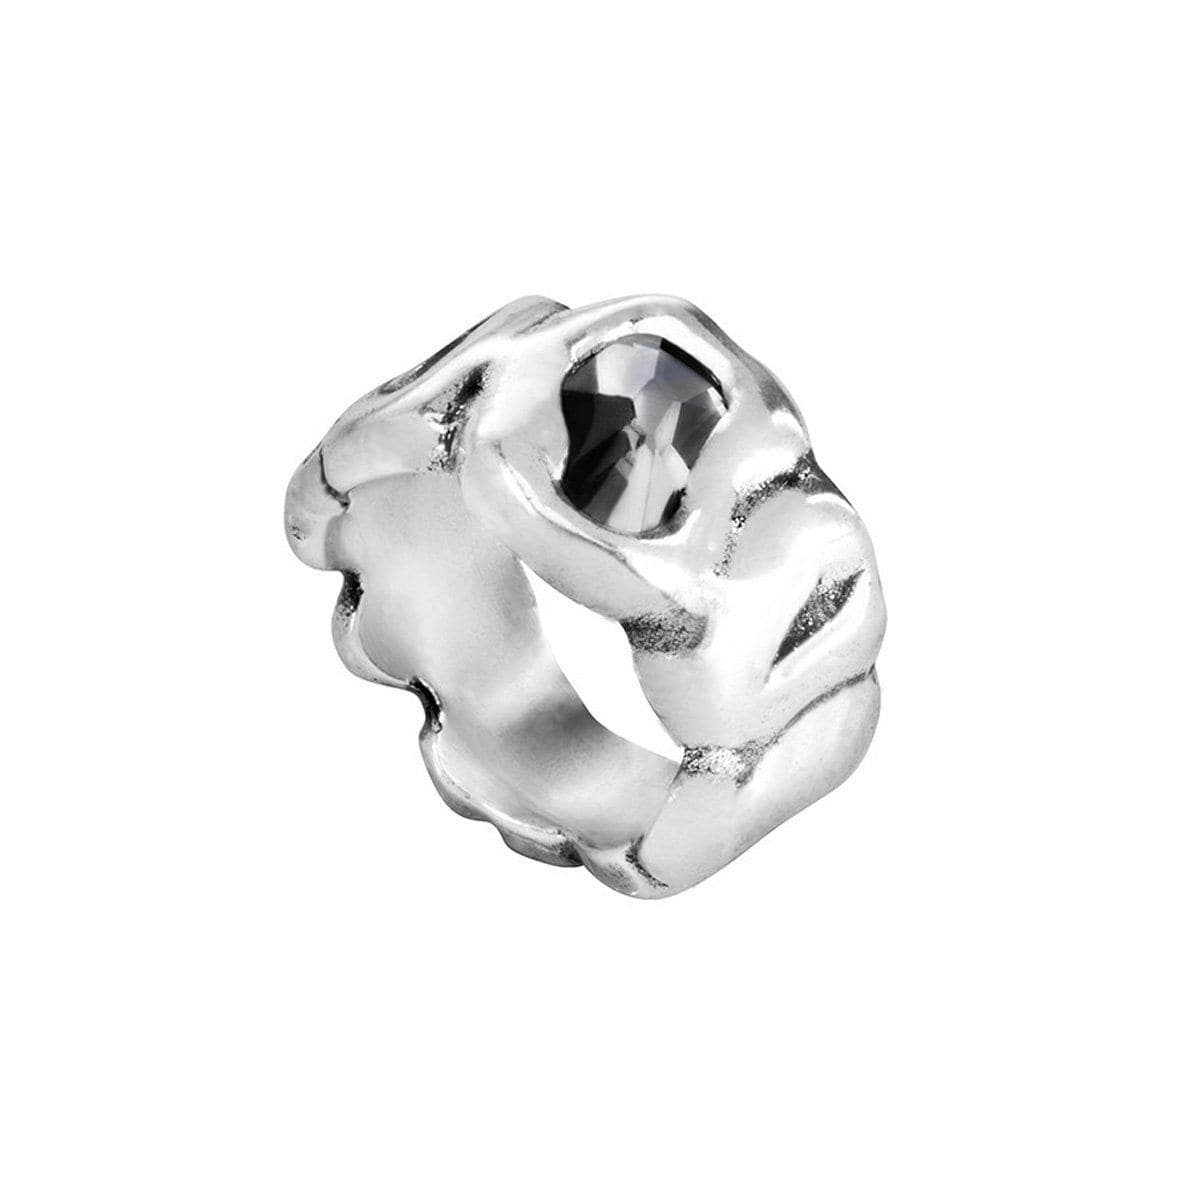 Sinner Layered Silver Ring - ANI0518GRSMTL-UNO de 50-Renee Taylor Gallery